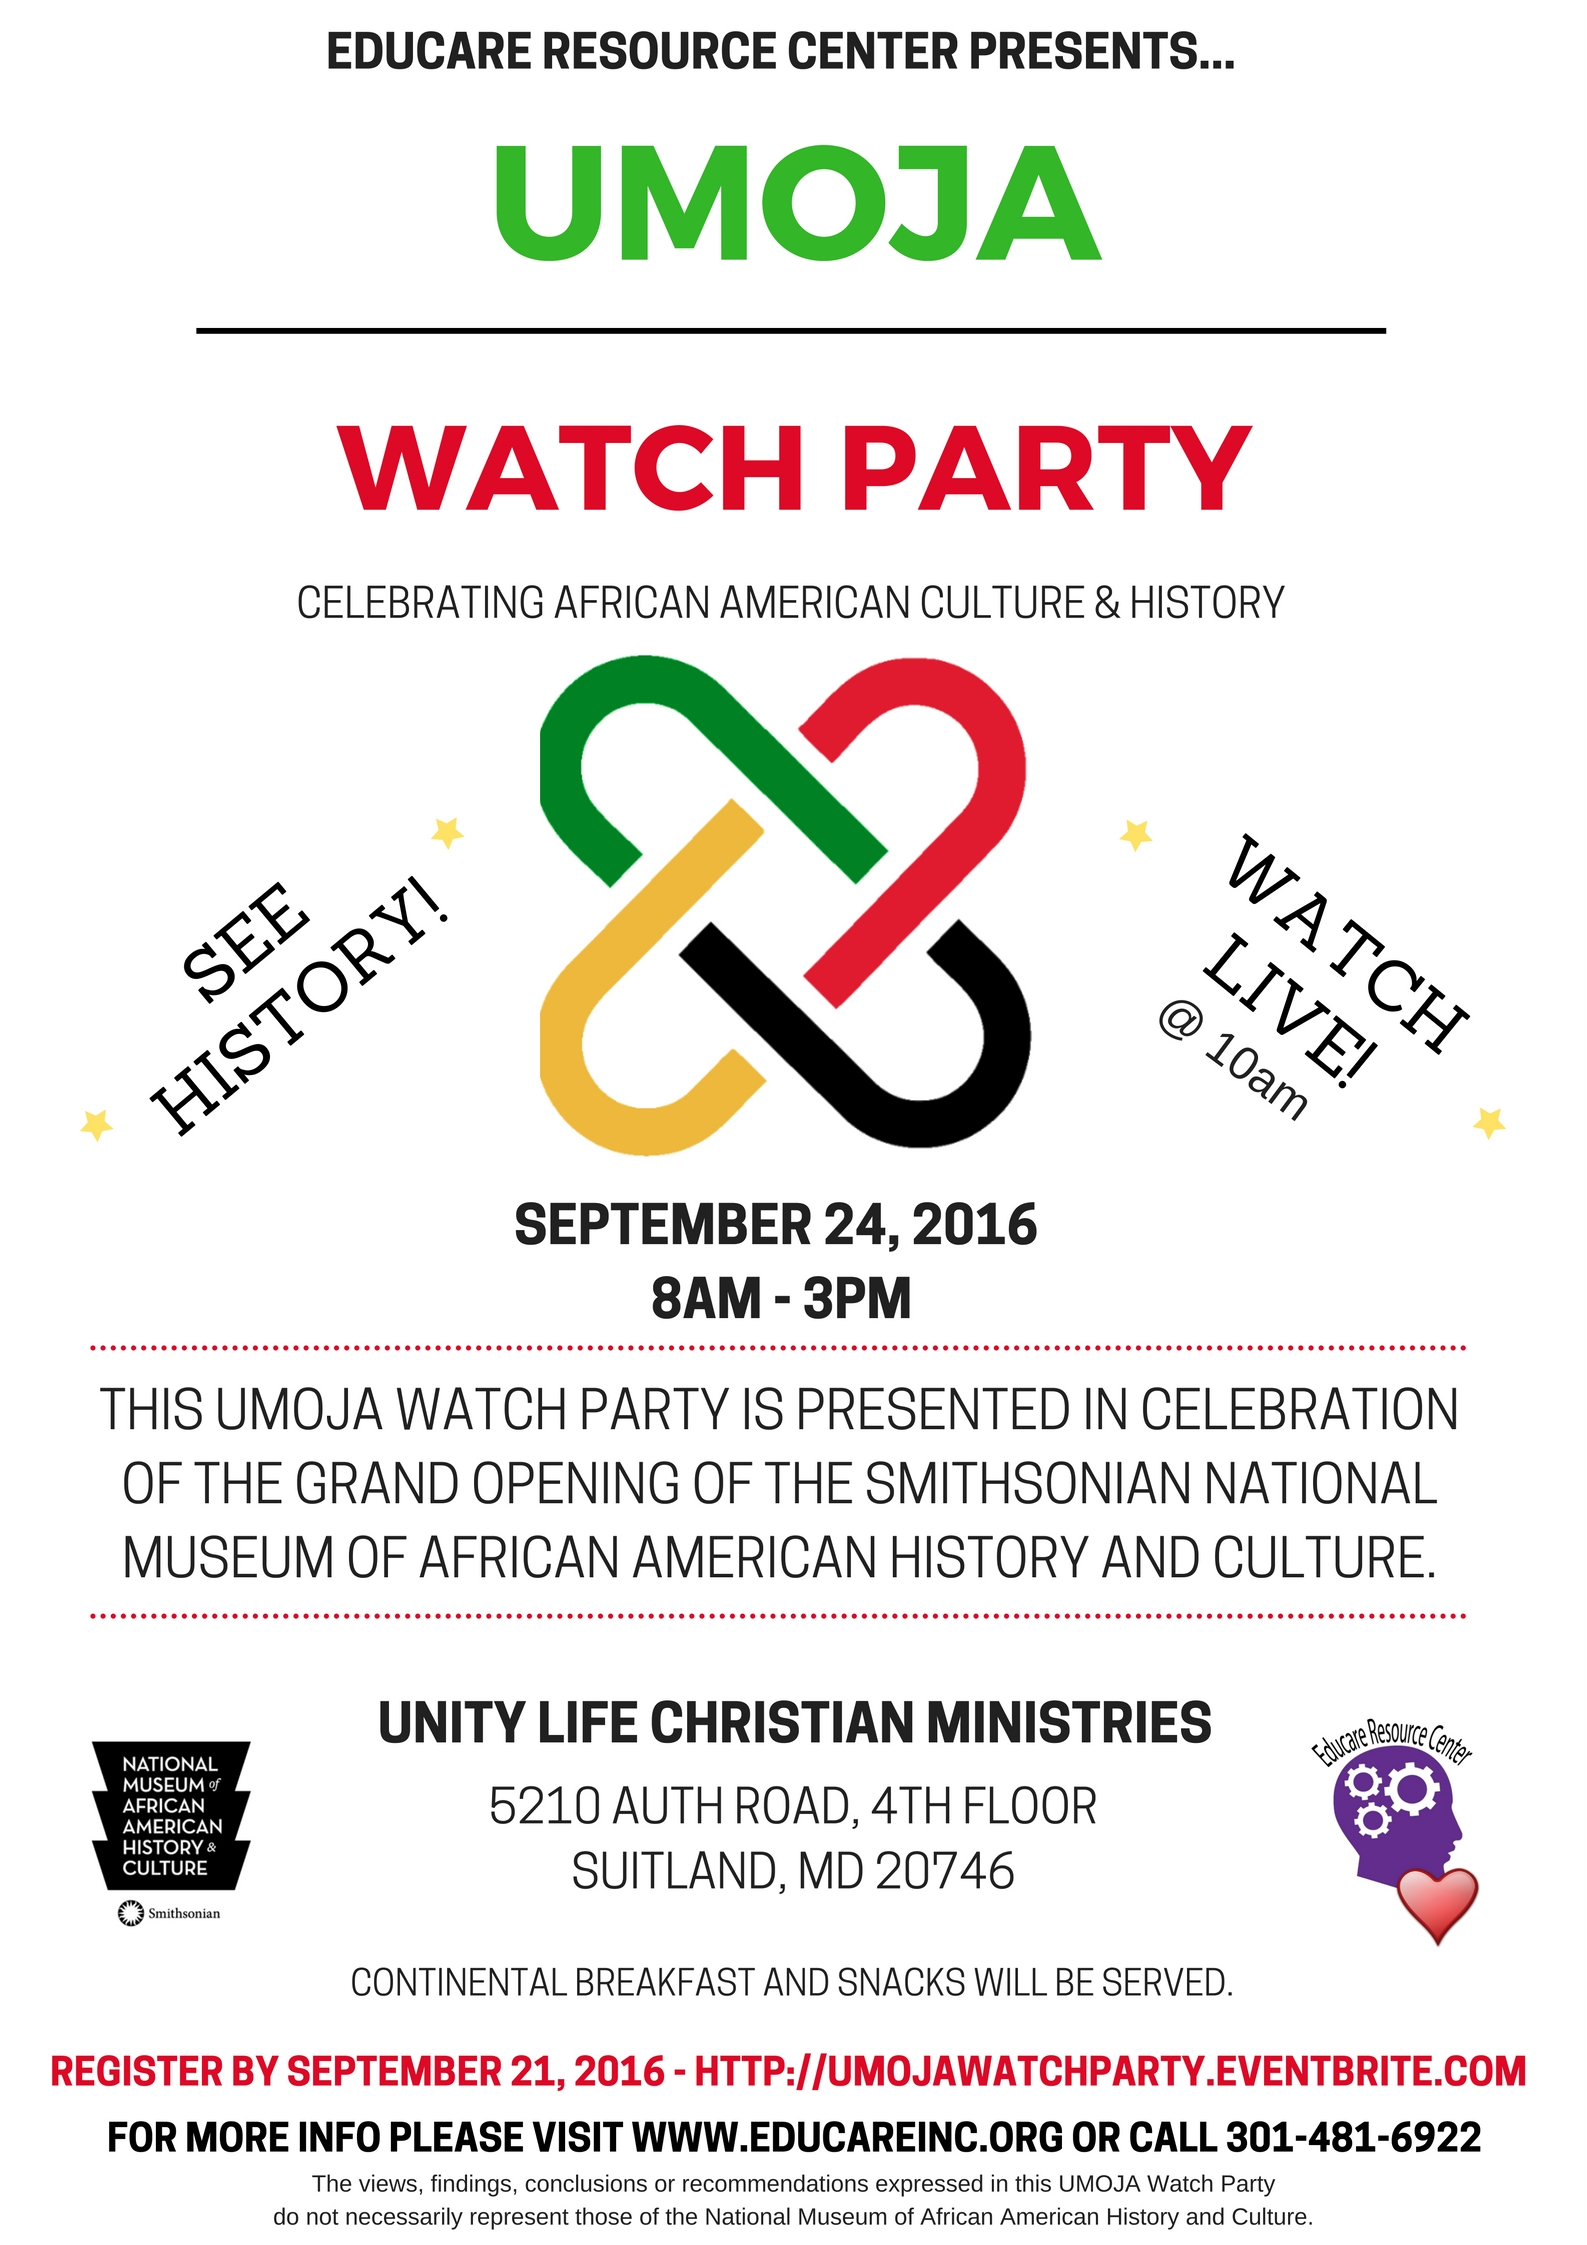 UMOJA Watch Party